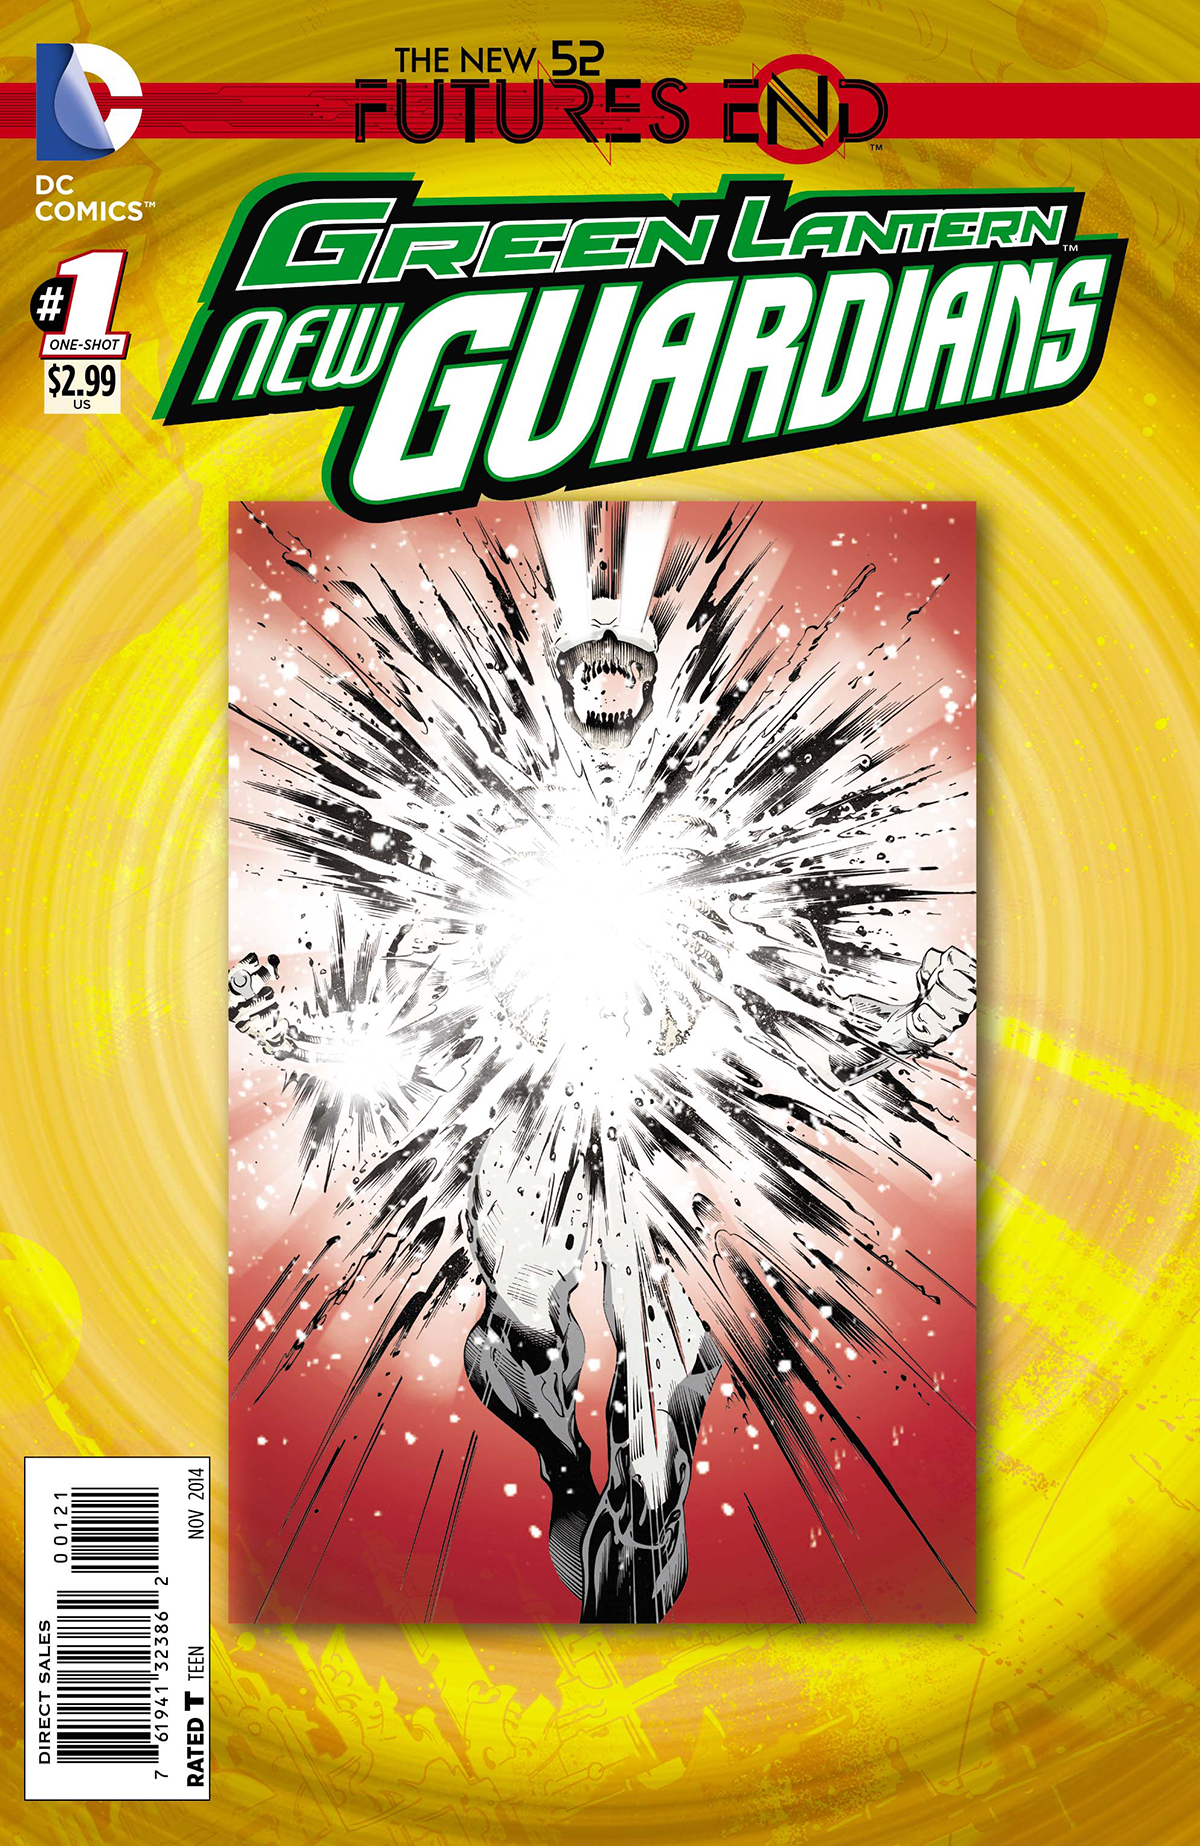 GREEN LANTERN NEW GUARDIANS FUTURES END #1 STANDARD ED